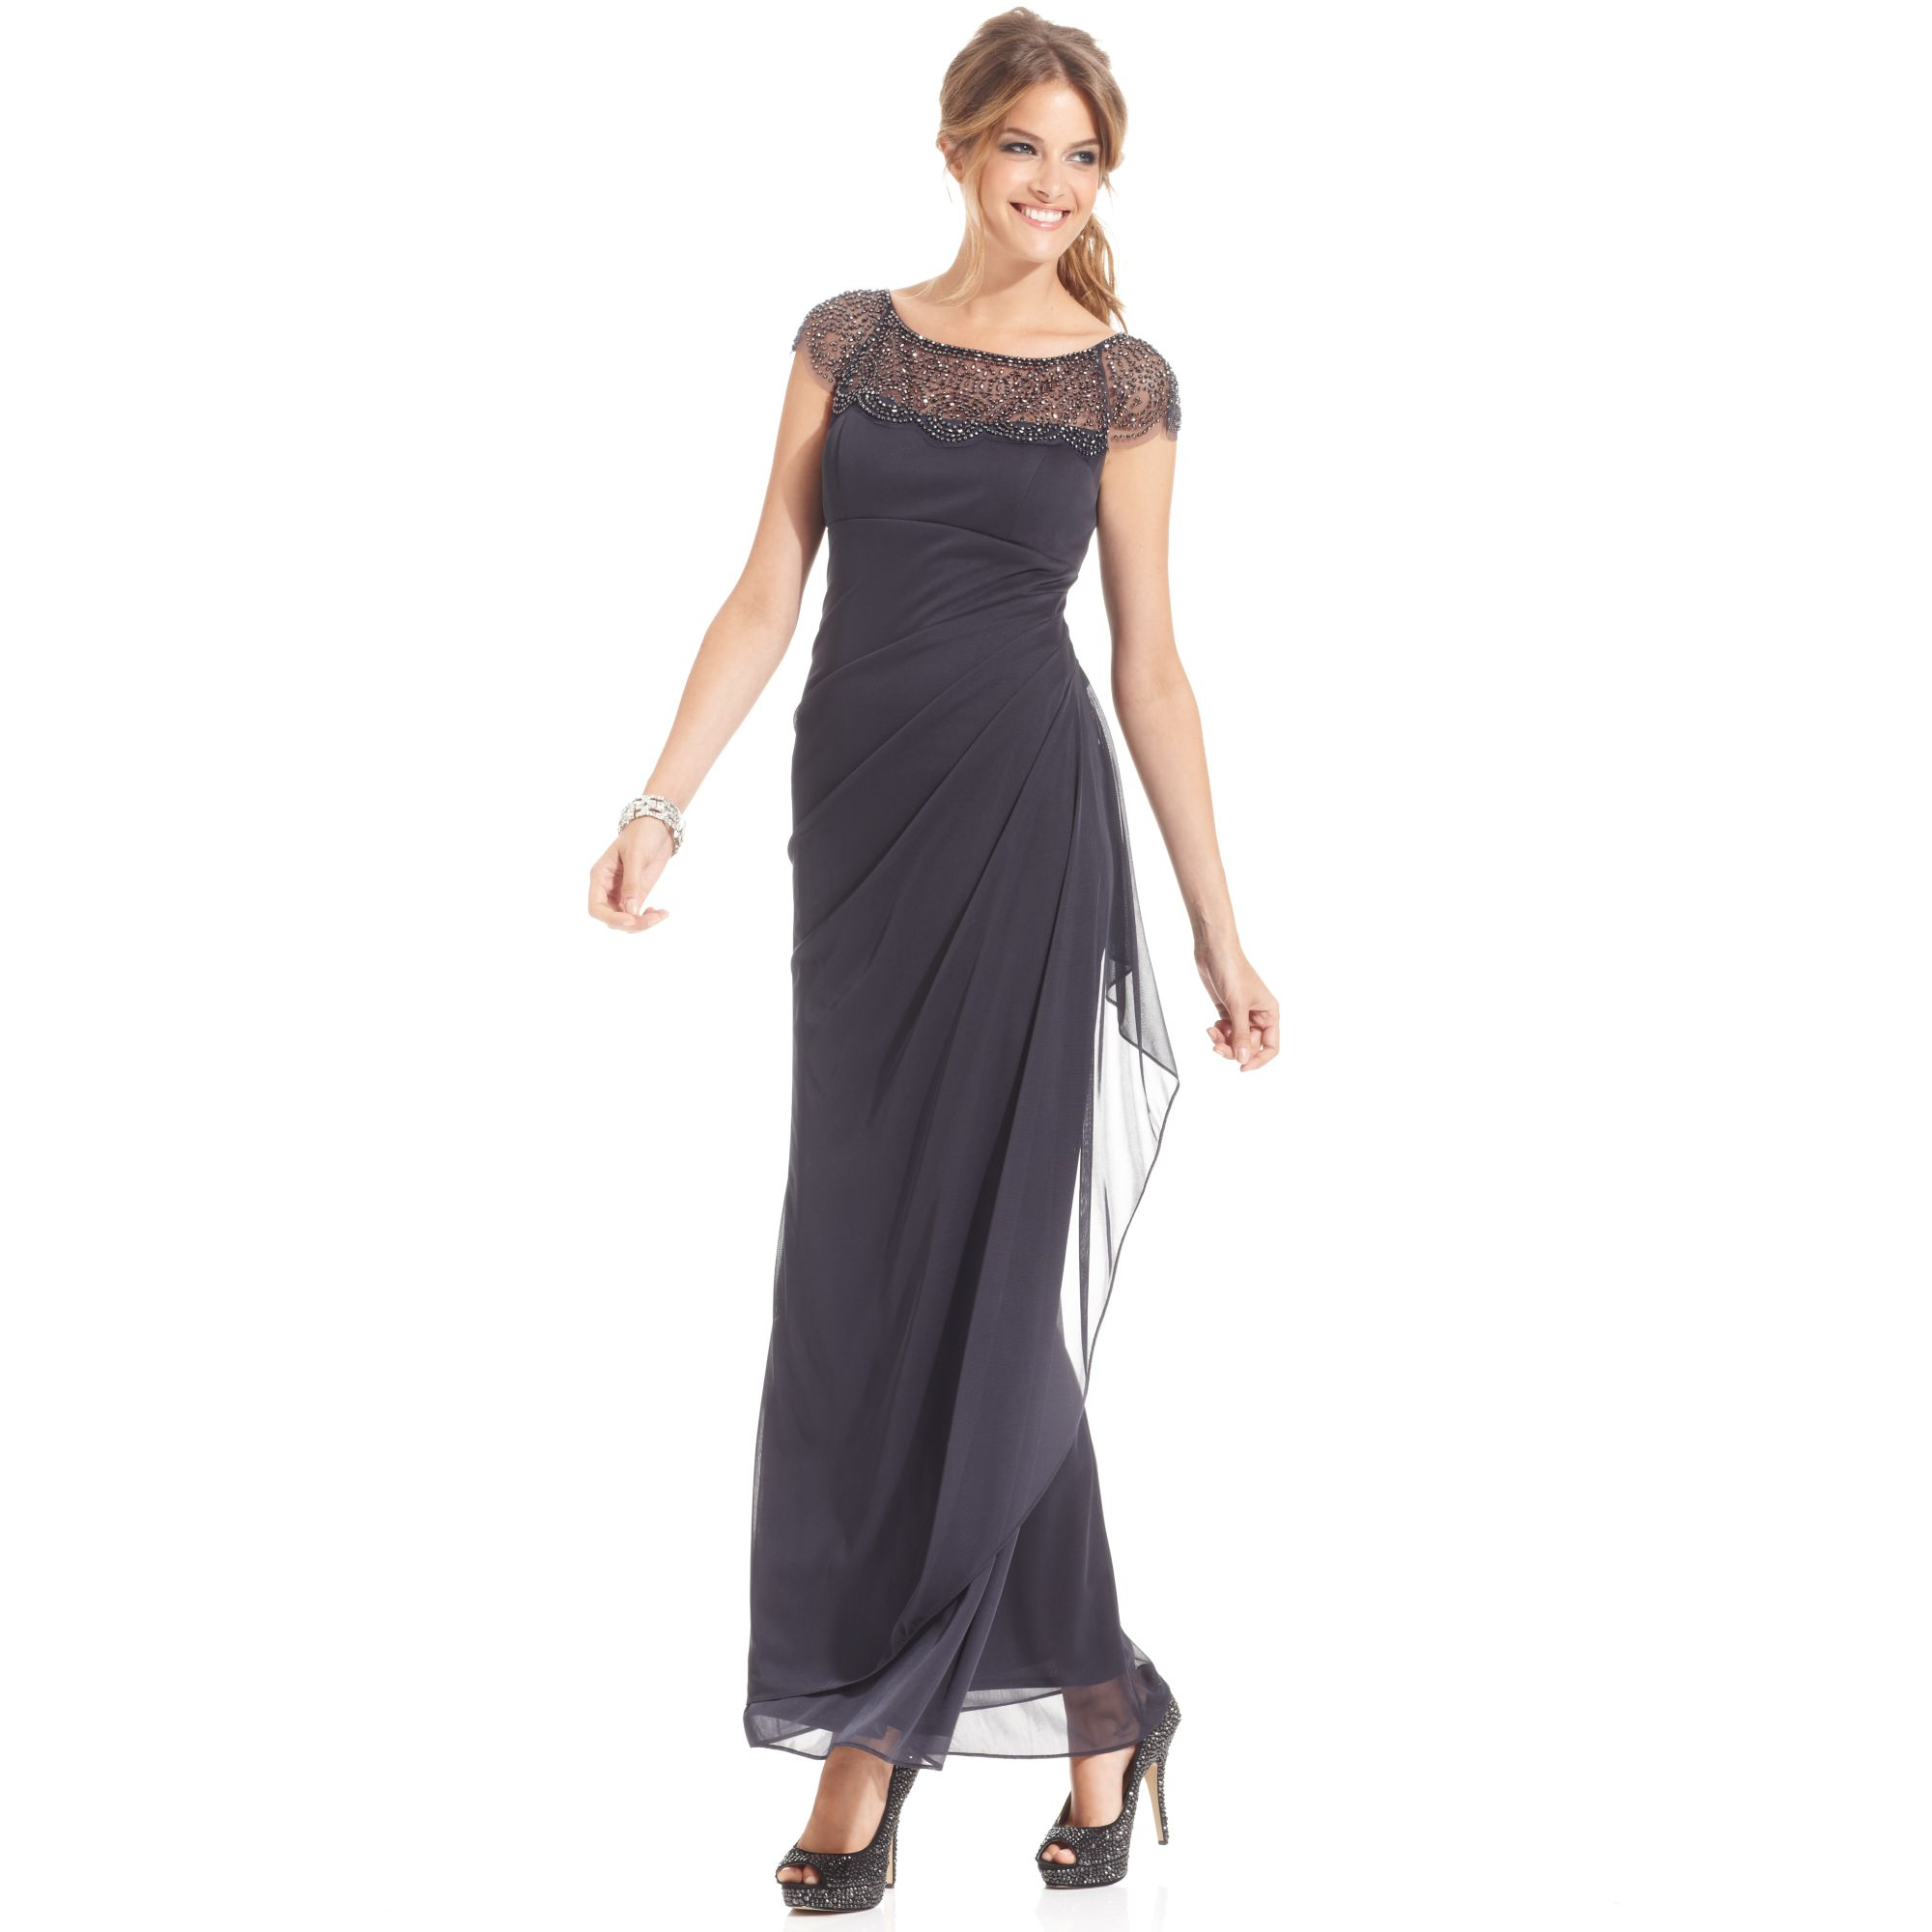 Xscape petite dress capsleeve beaded gown in gray for Petite designers